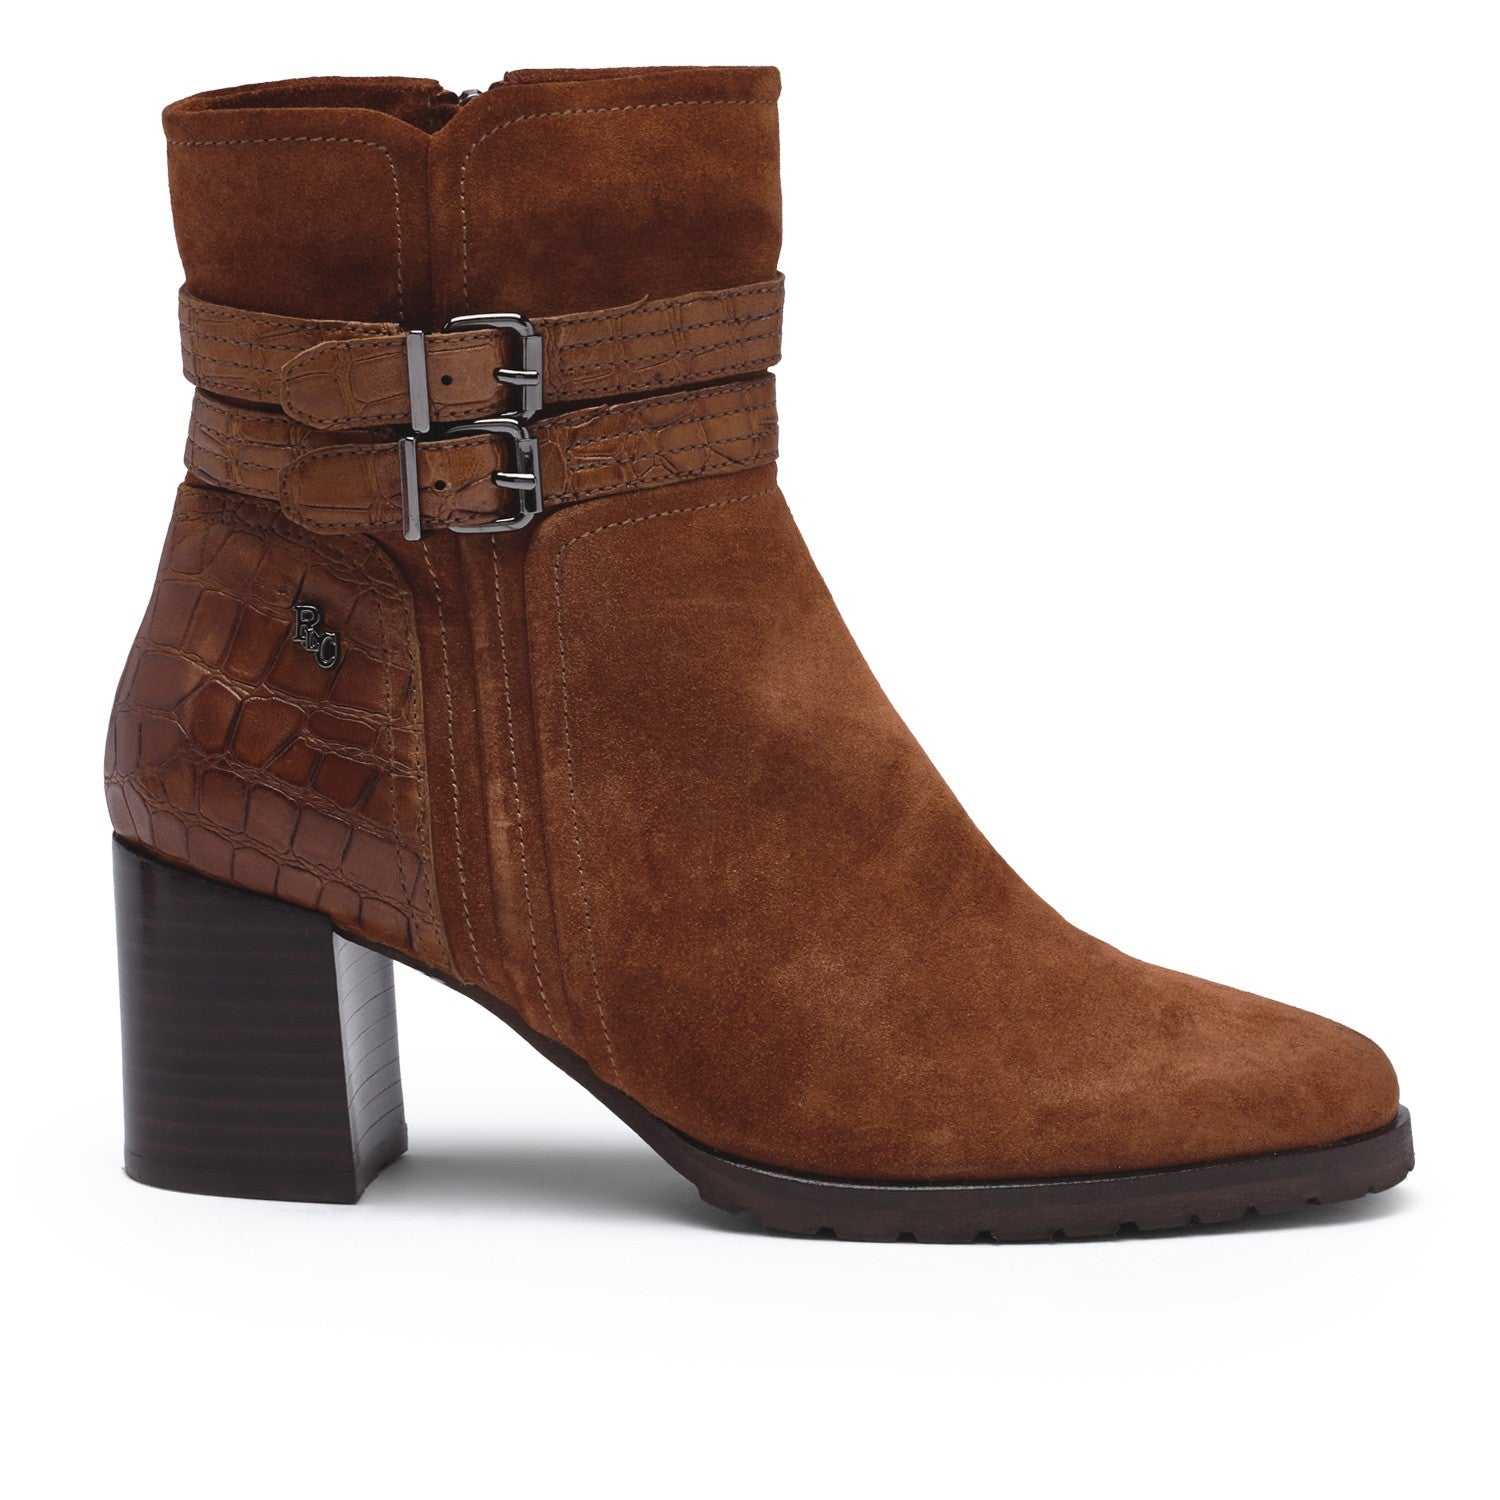 Regarde Le Ciel Tan Tall Ankle Boot